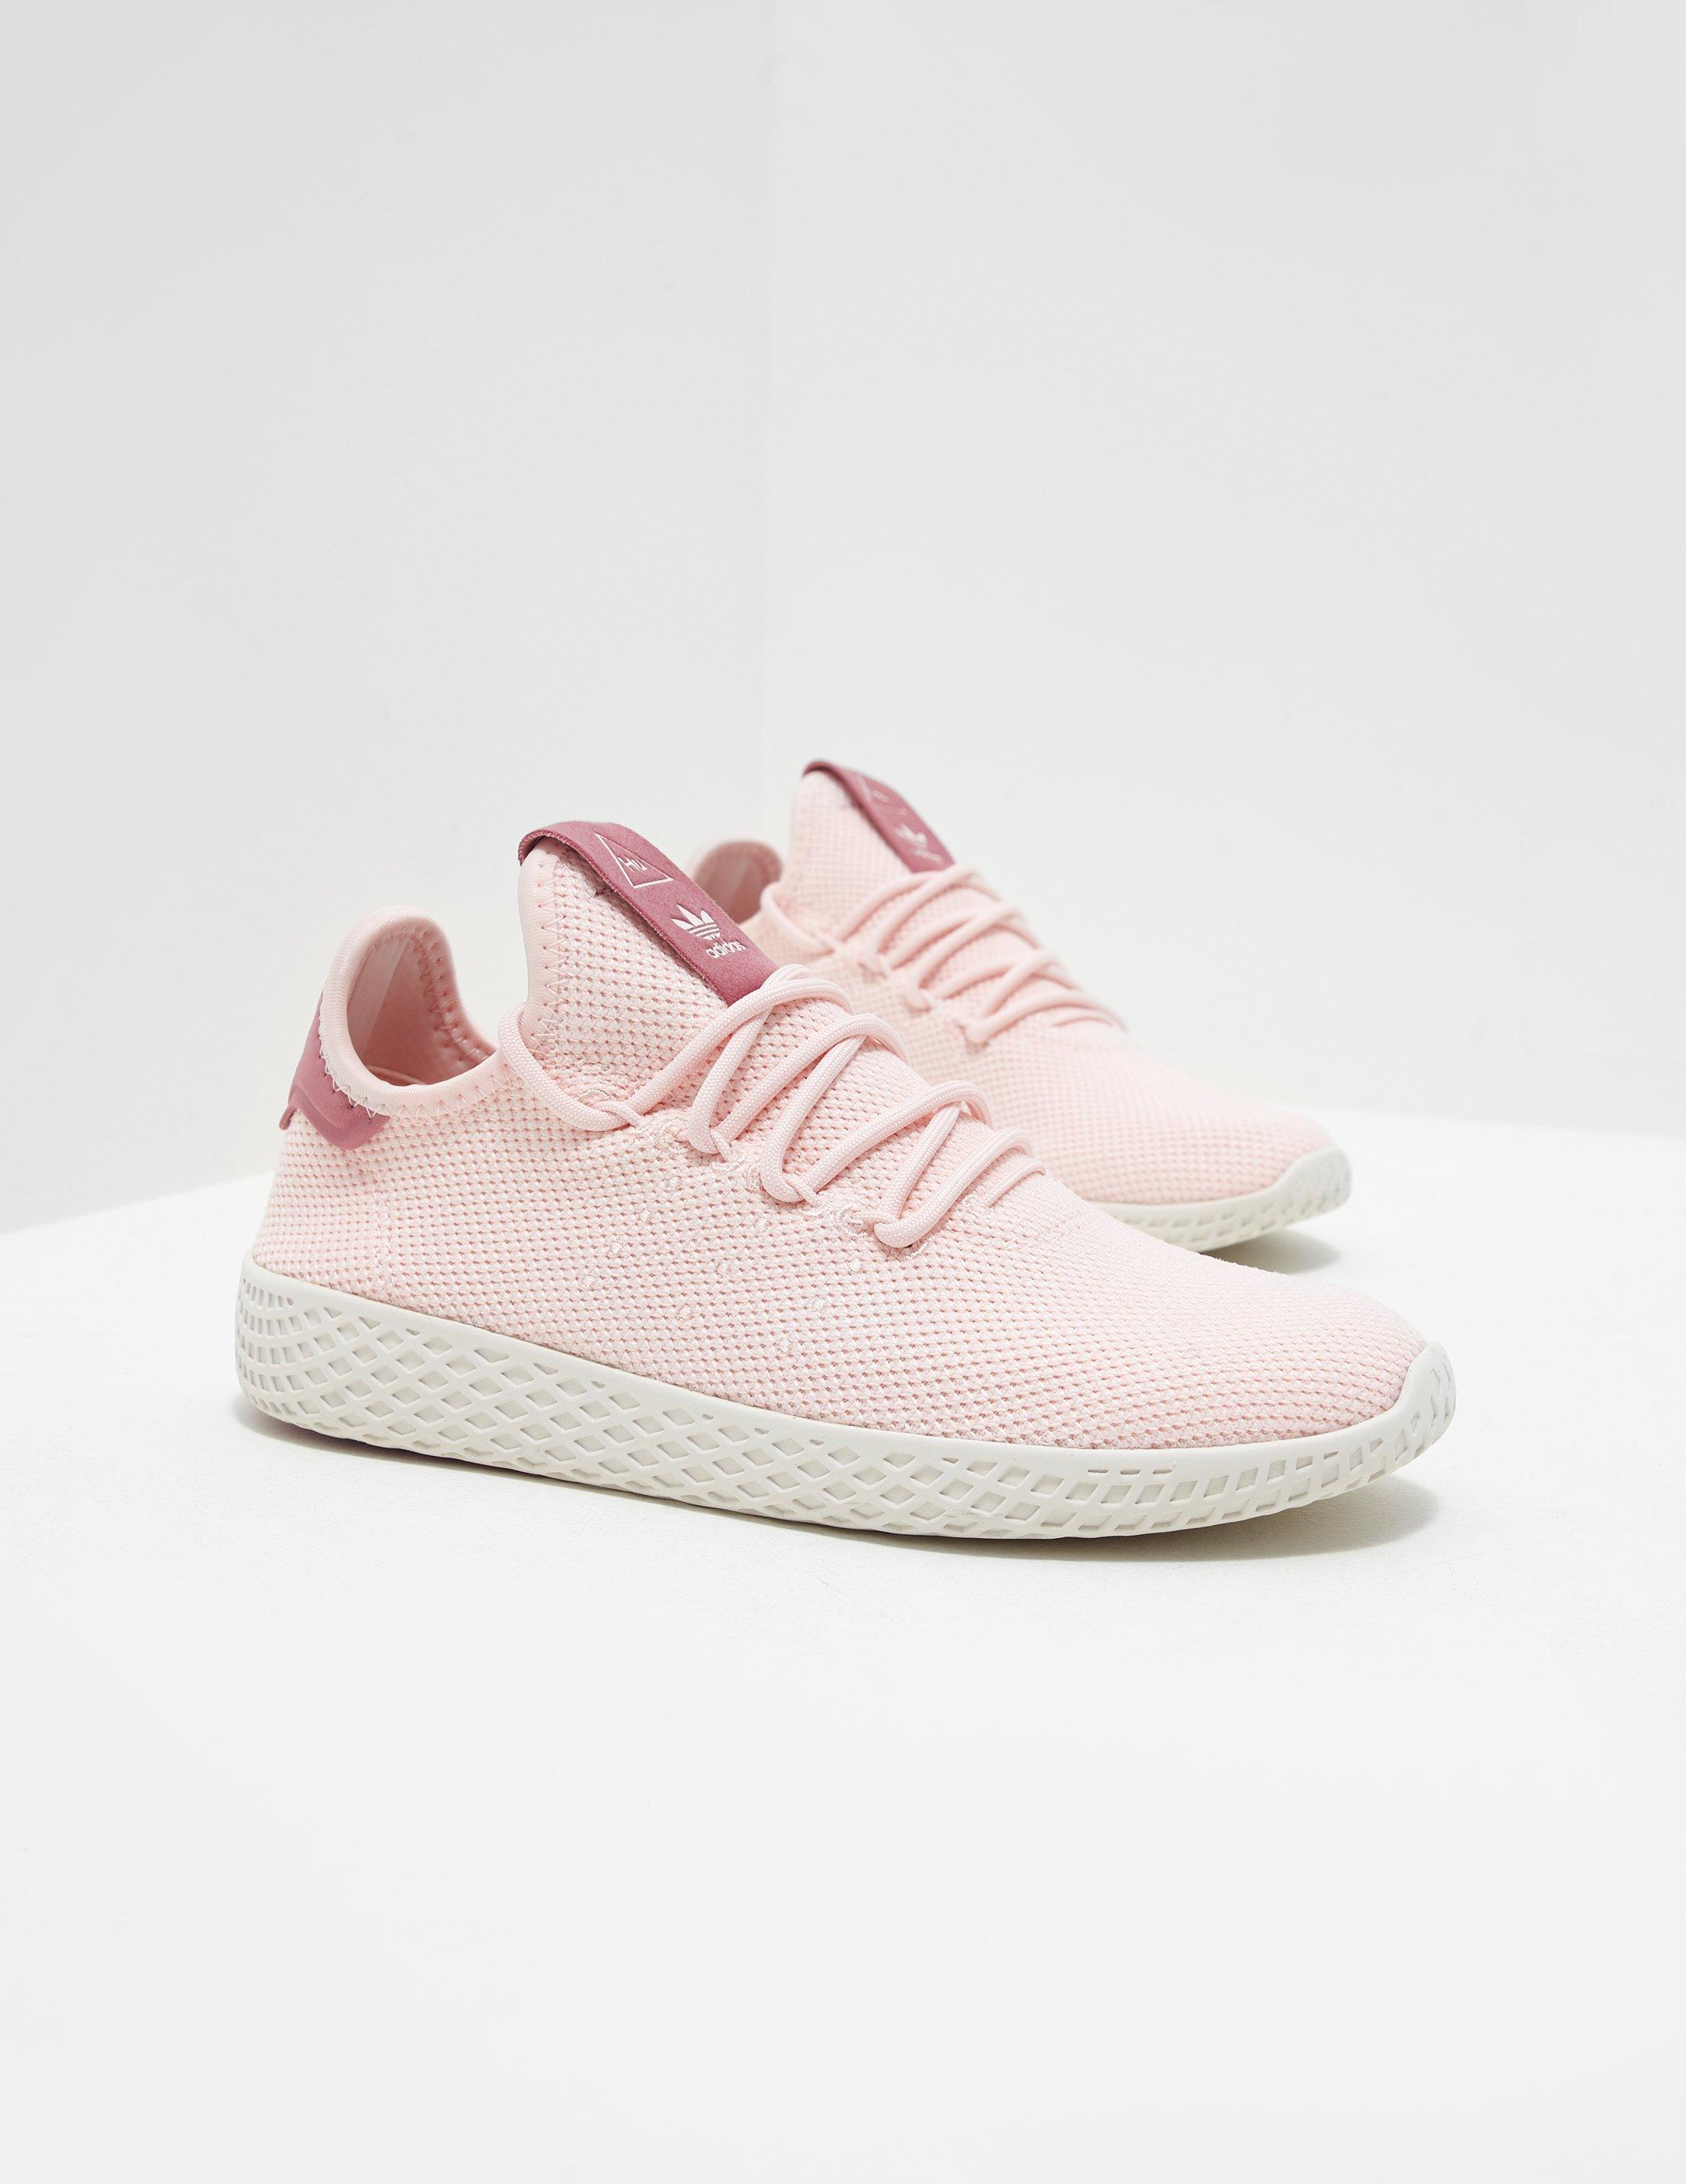 adidas Originals Rubber Tennis Hu Sneakers in Ice Pink,White (Pink)